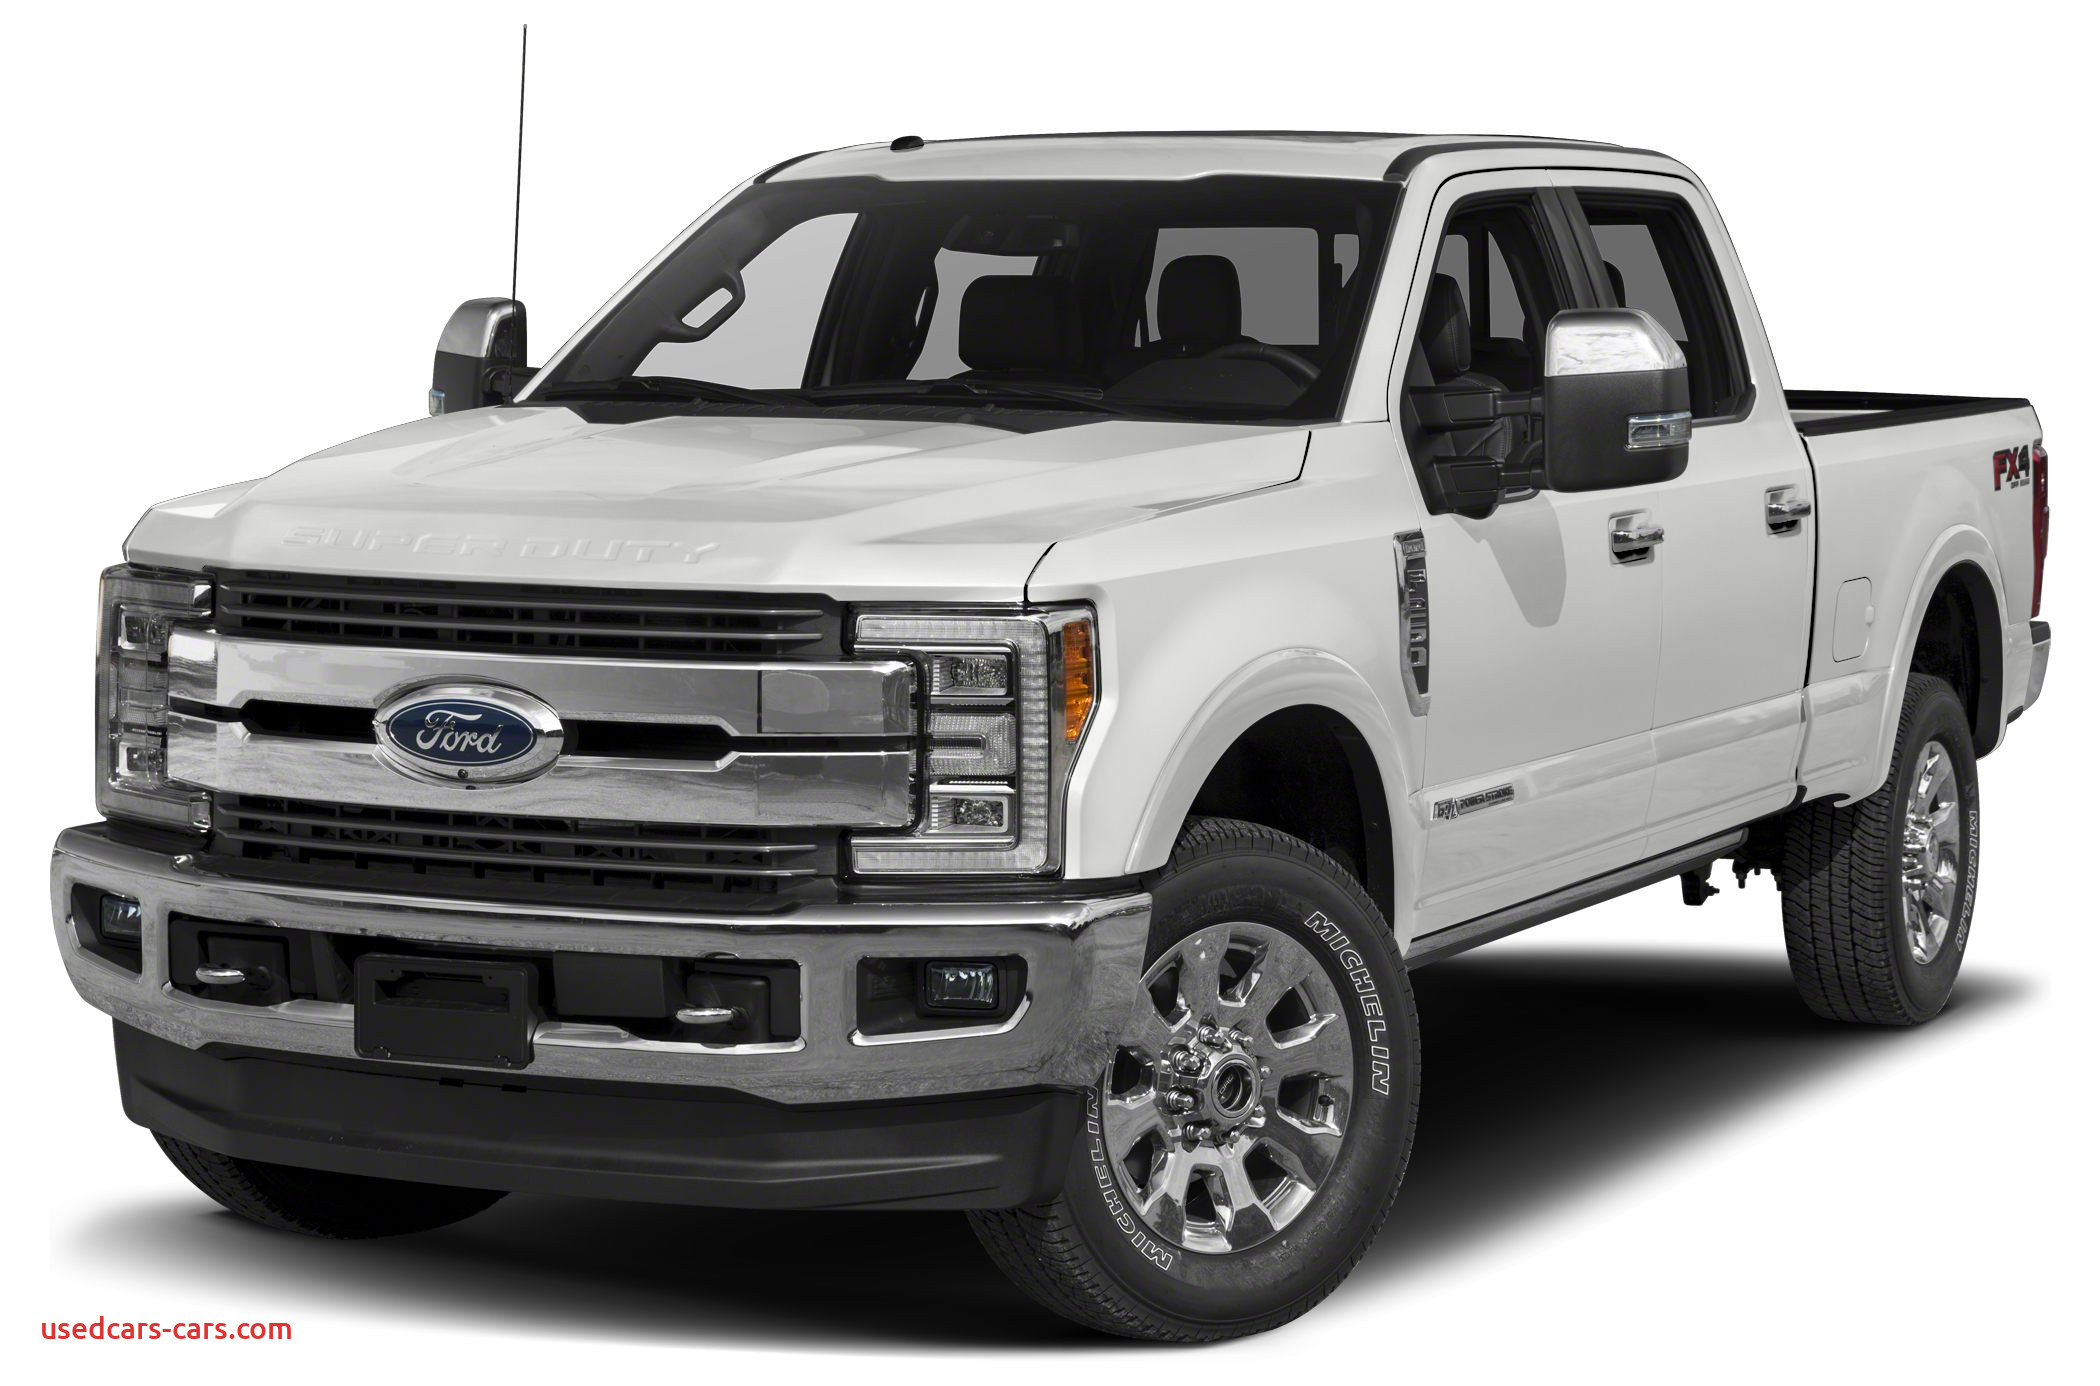 Ford 2020 F 250 King Ranch Elegant 2019 ford F 250 King Ranch 4×4 Sd Crew Cab 6 75 Ft Box 160 In Wb Srw Pricing and Options